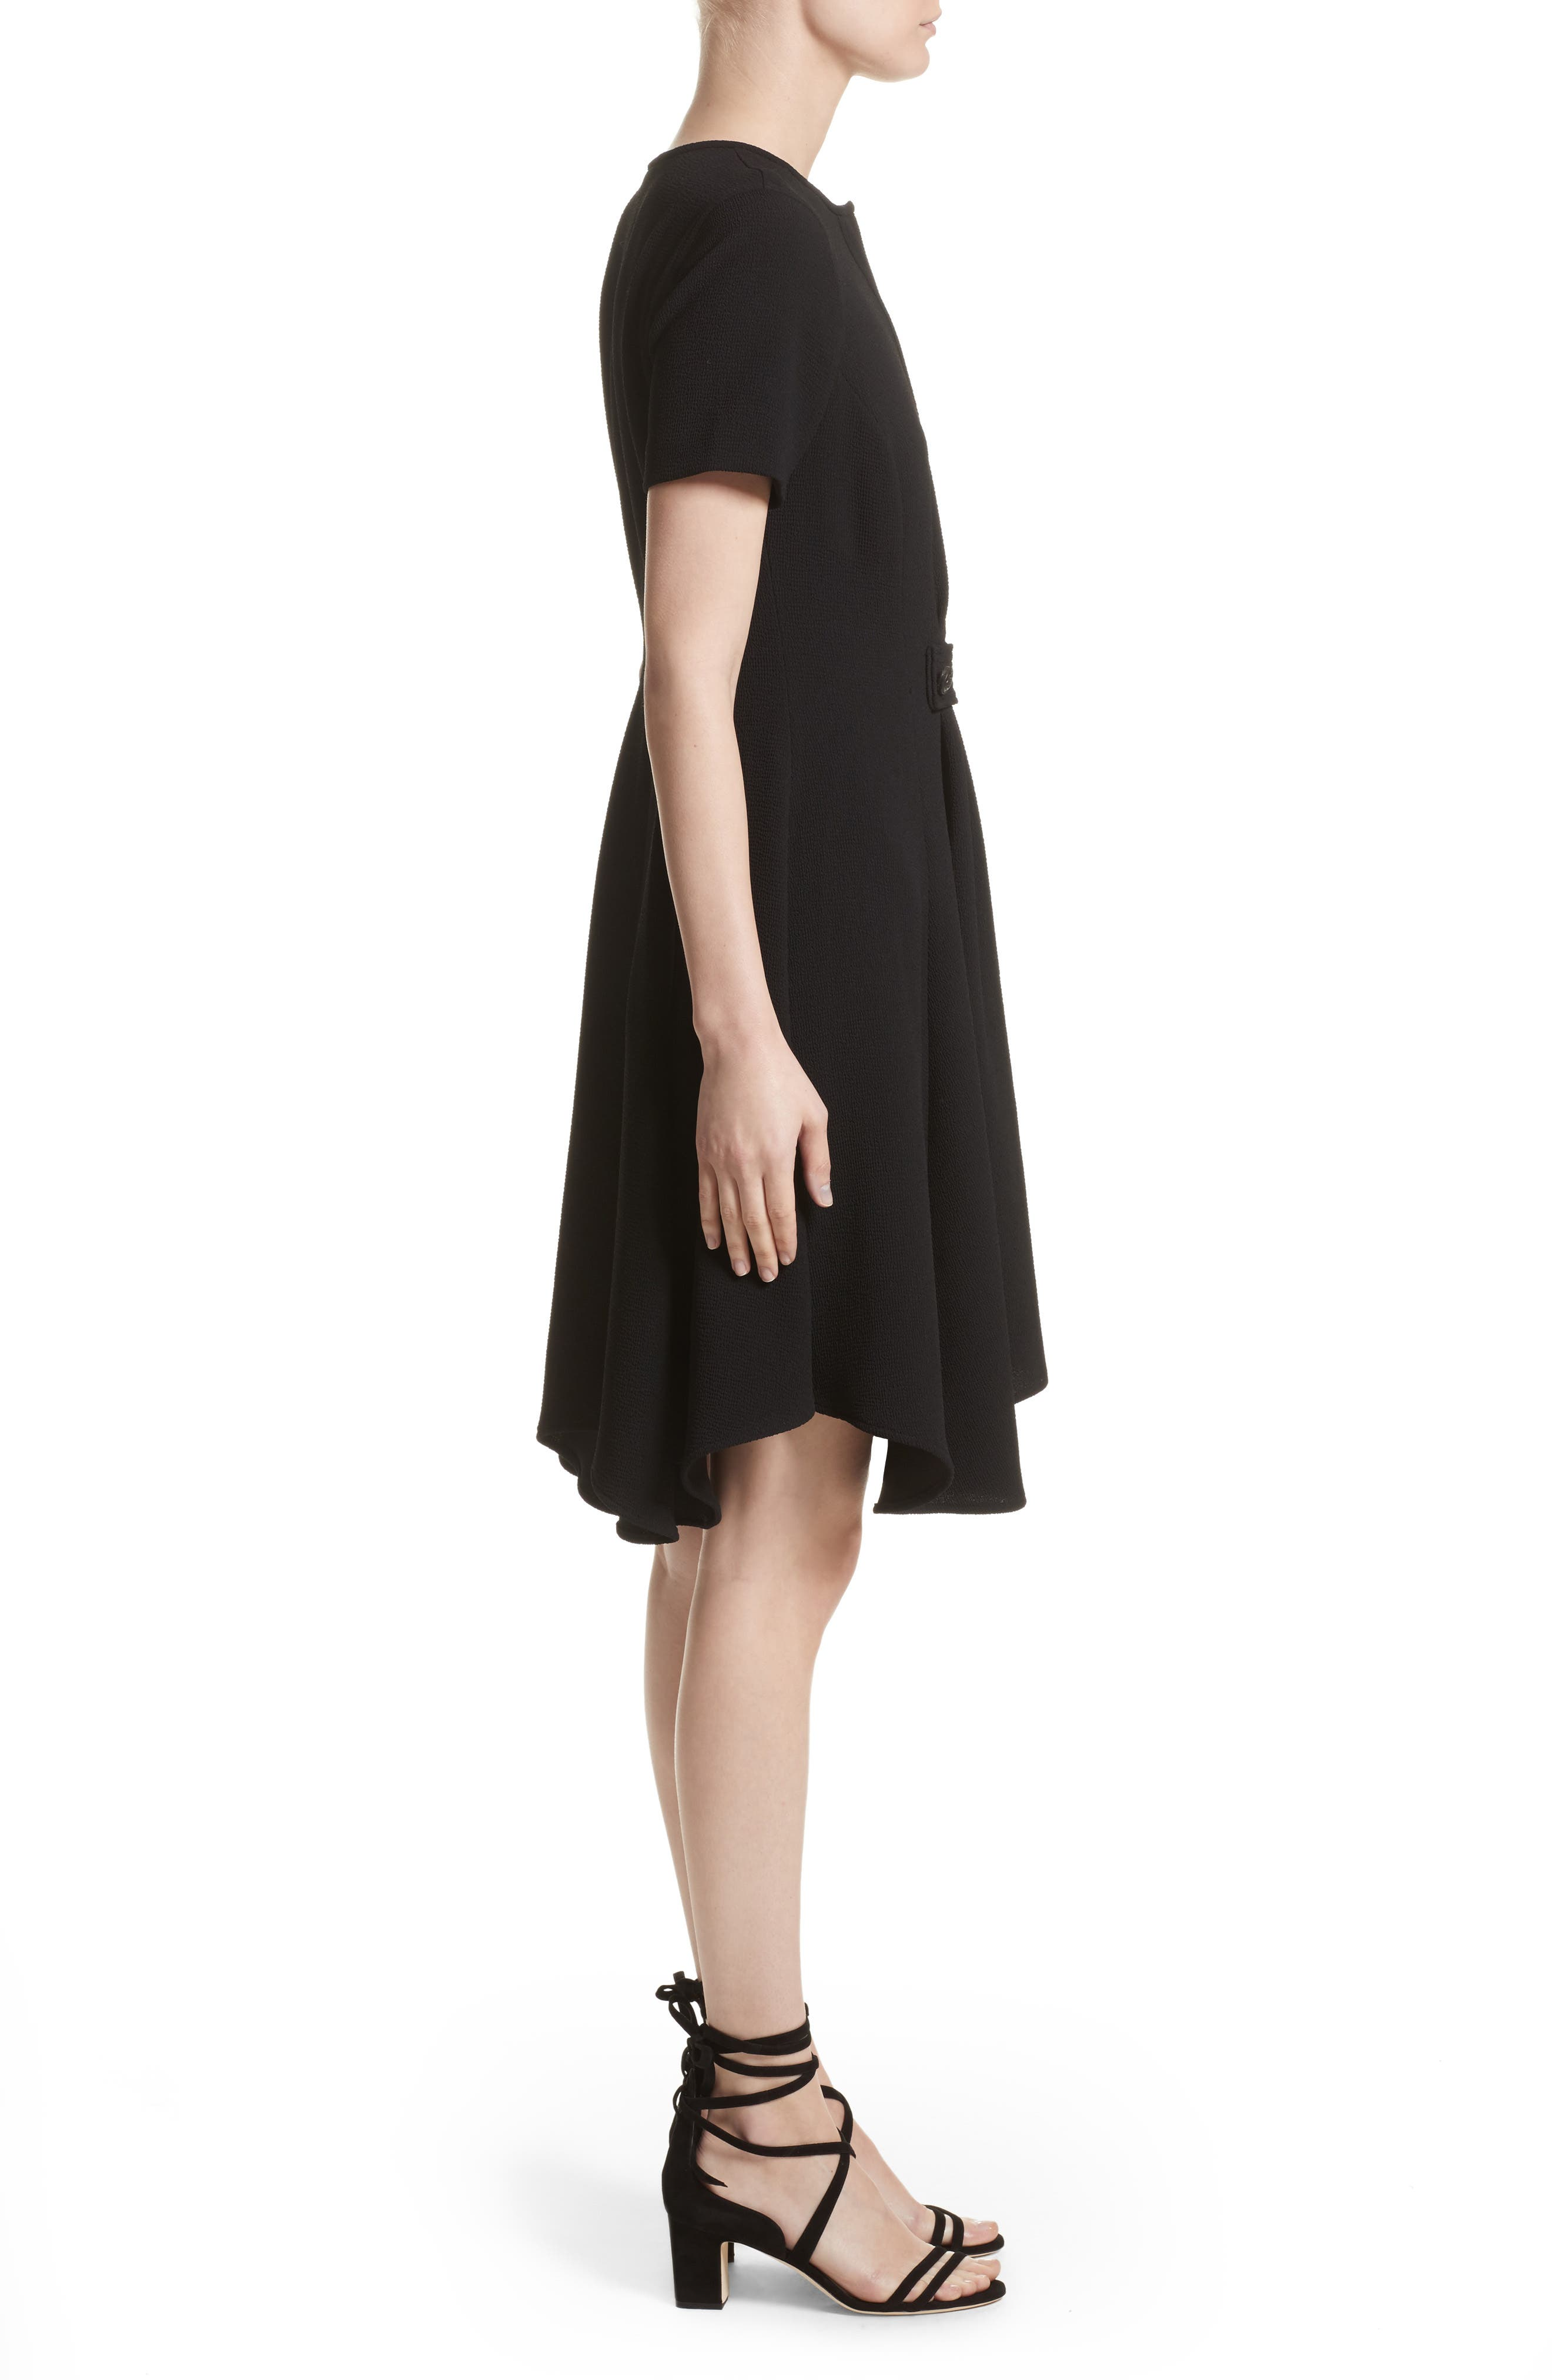 Maressa Dress,                             Alternate thumbnail 6, color,                             Black